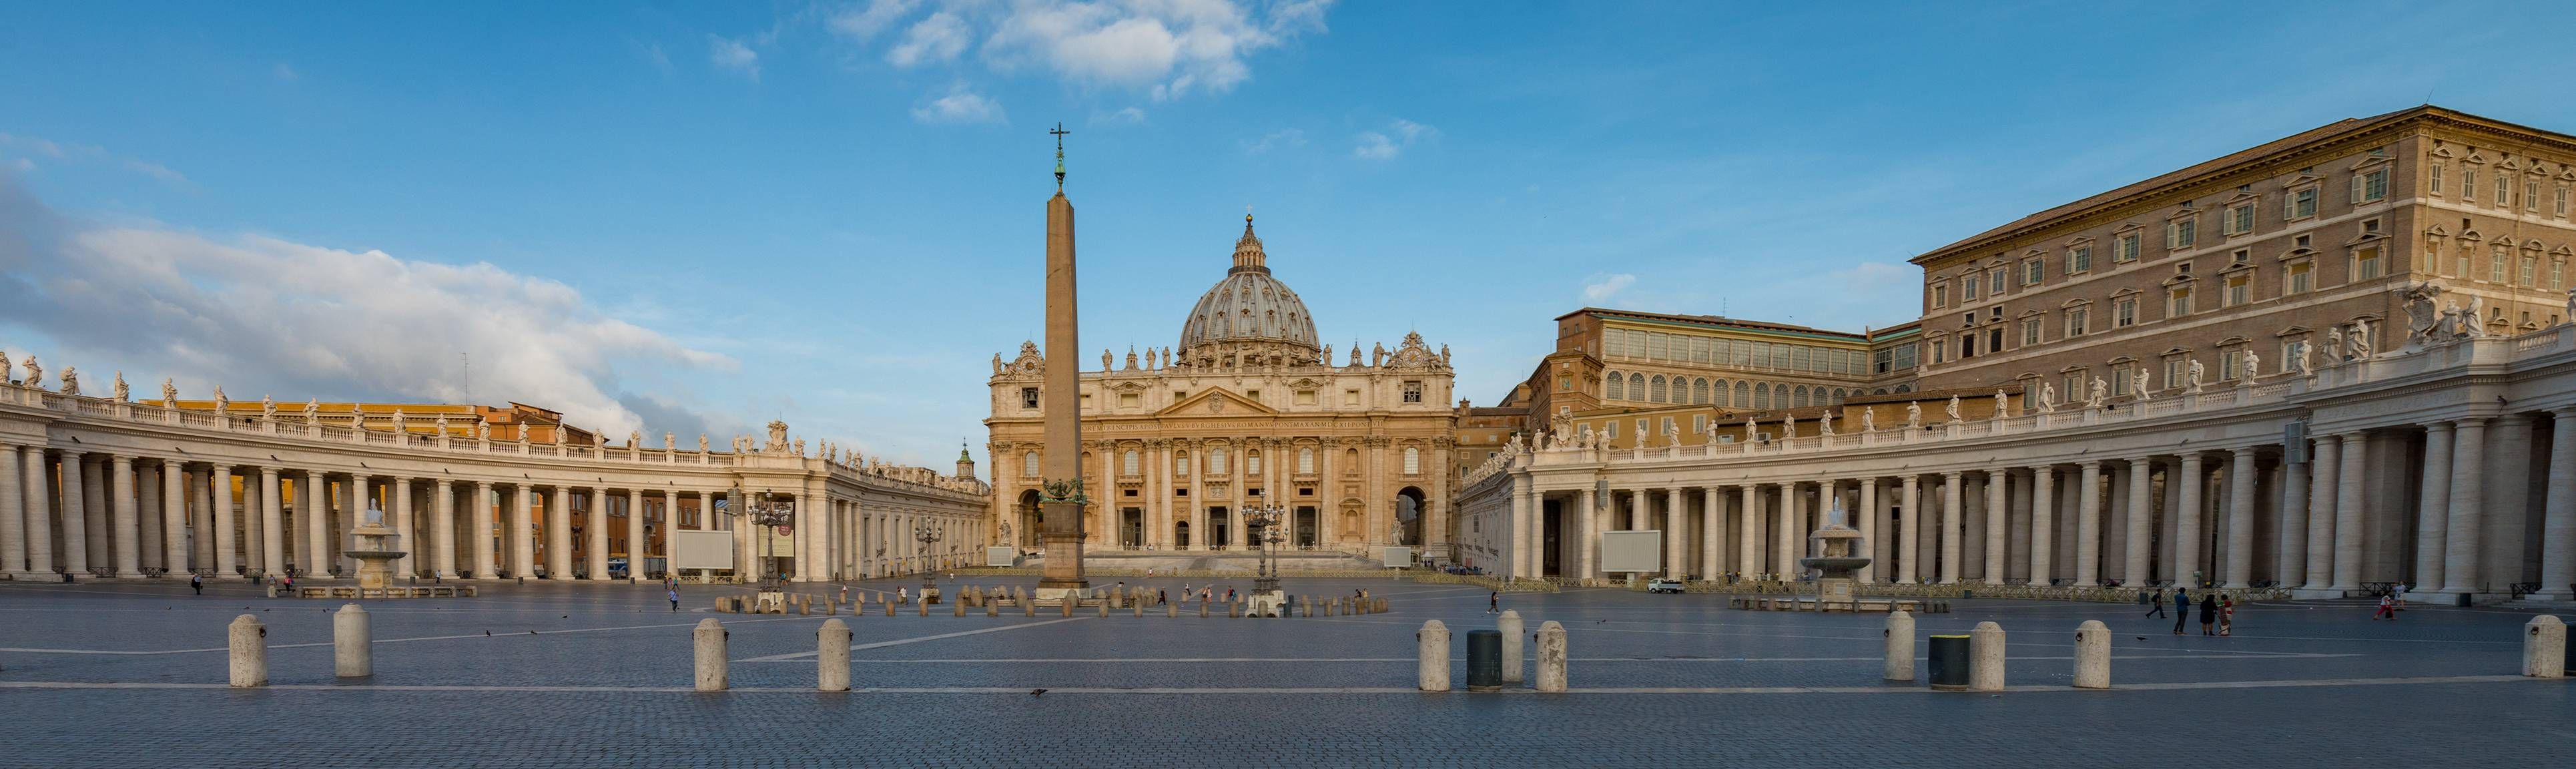 View of St. Peter's Square with St. Peter's Basilica in the background